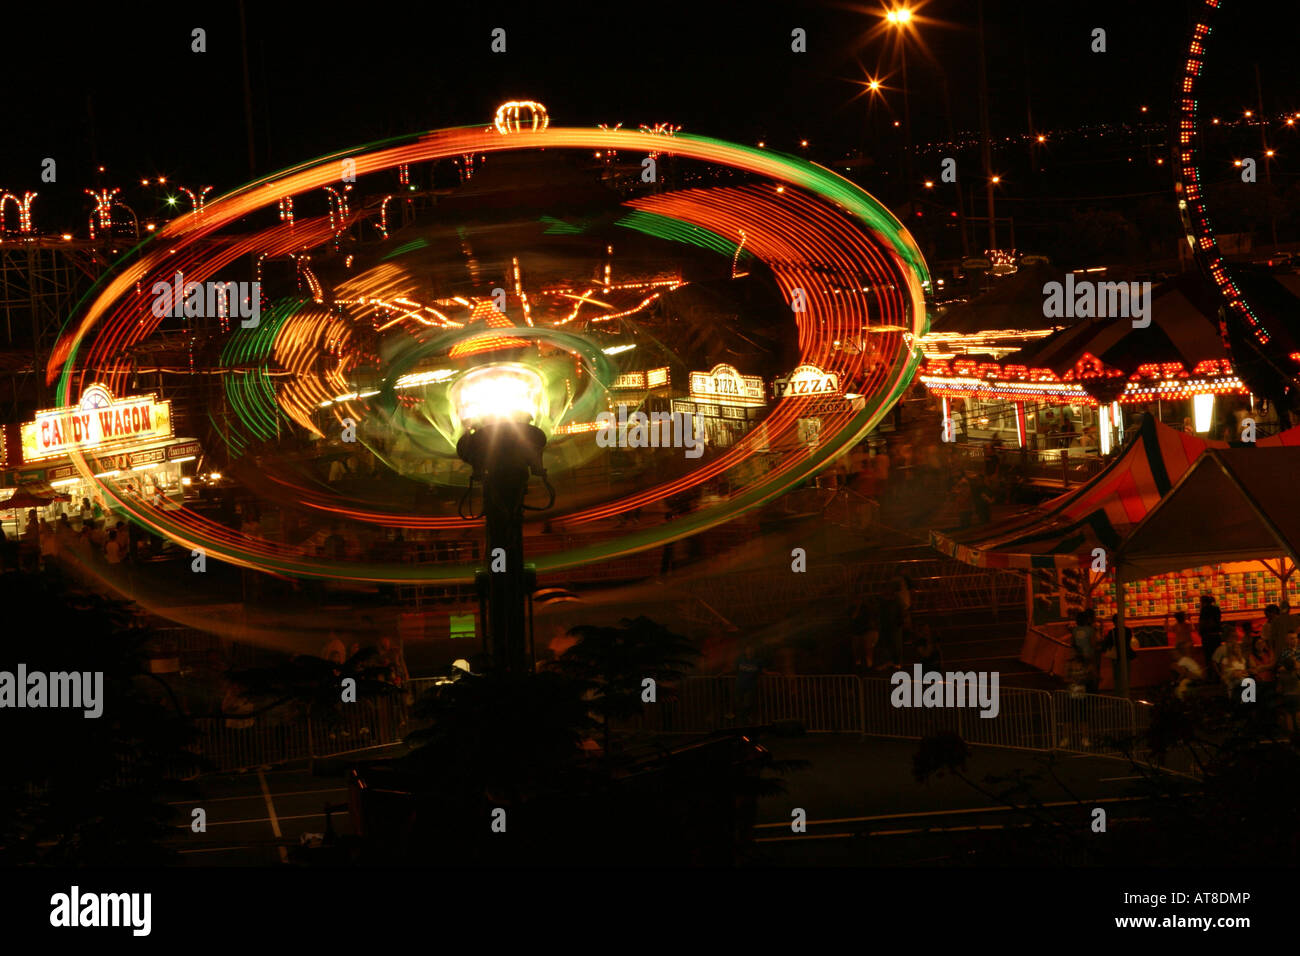 Long-exposure of carnival ride at the 50th State Fair on Oahu, Hawaii. Stock Photo